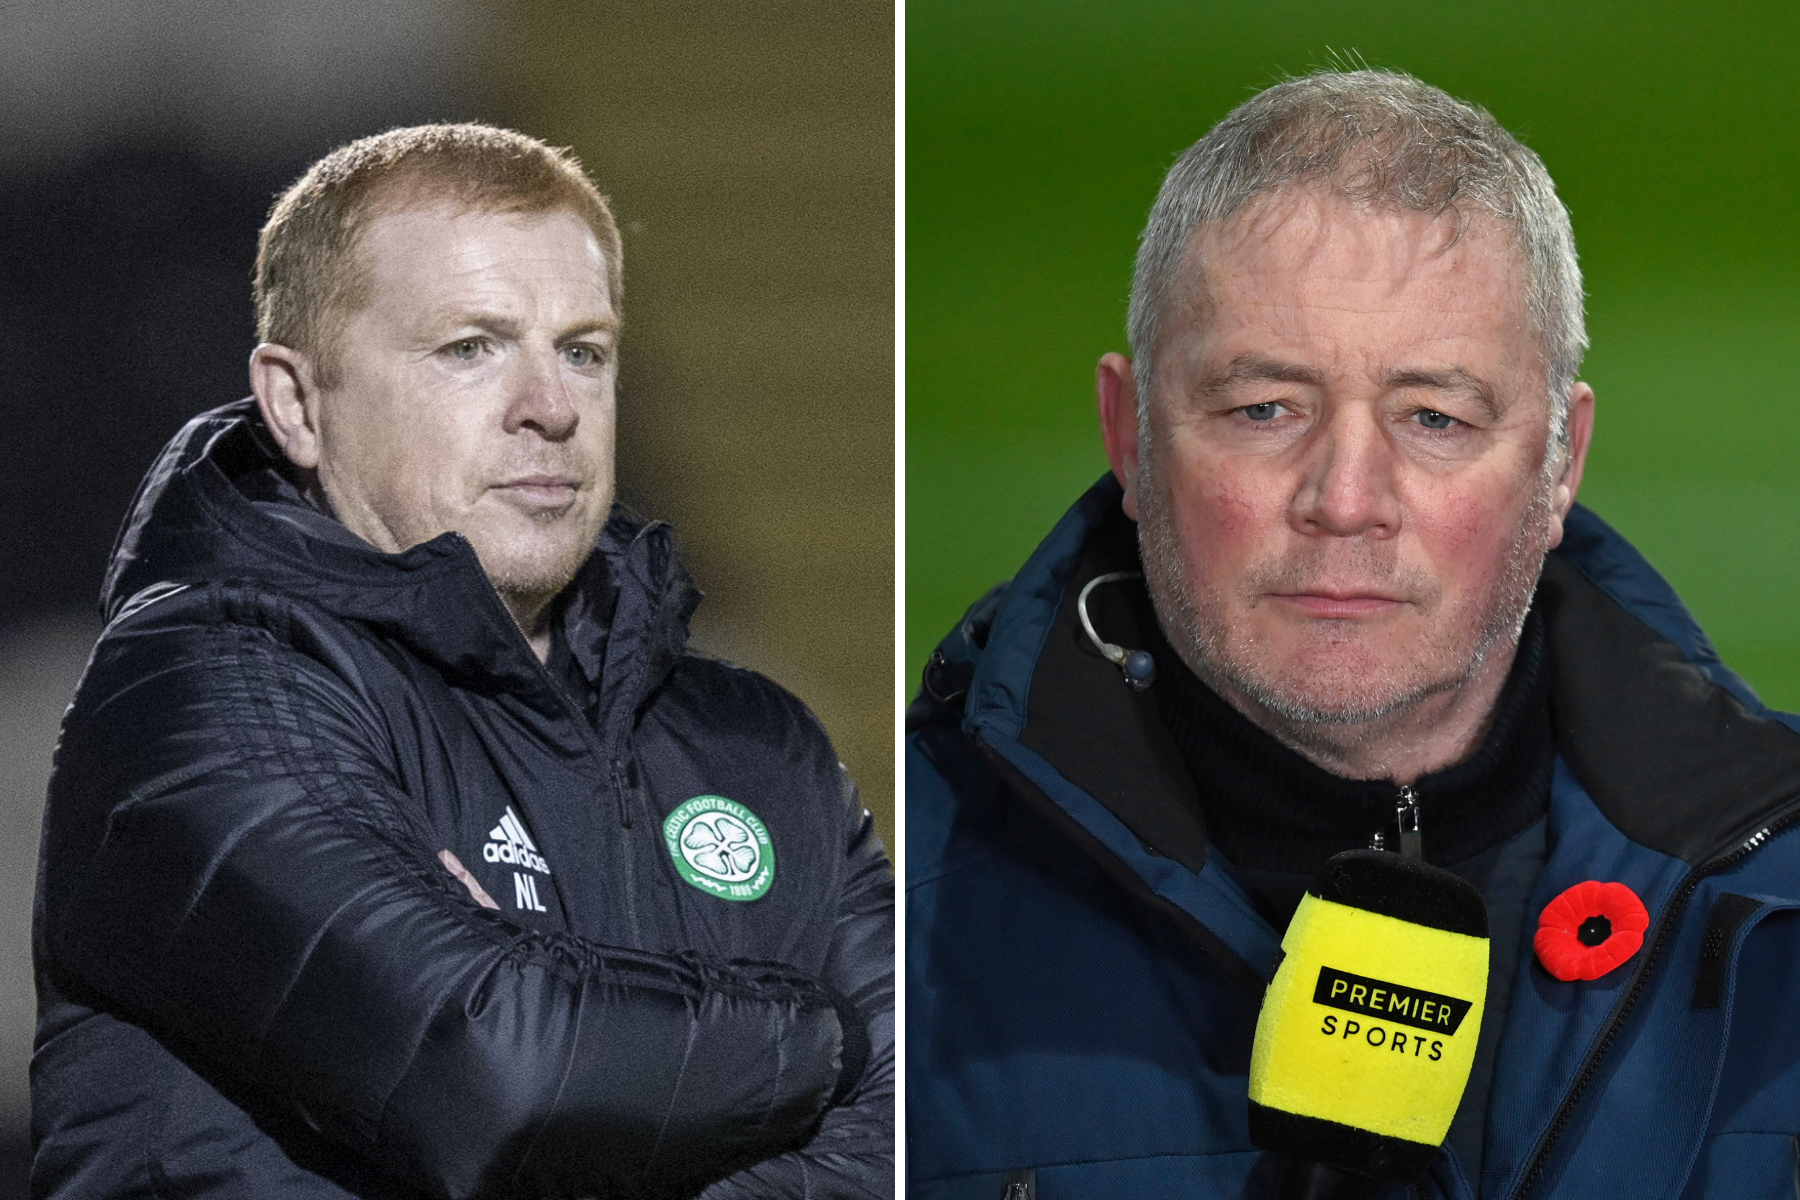 Rangers icon Ally McCoist slams SFA for 'double standards' and says Celtic should be banned over Dubai 'chaos'